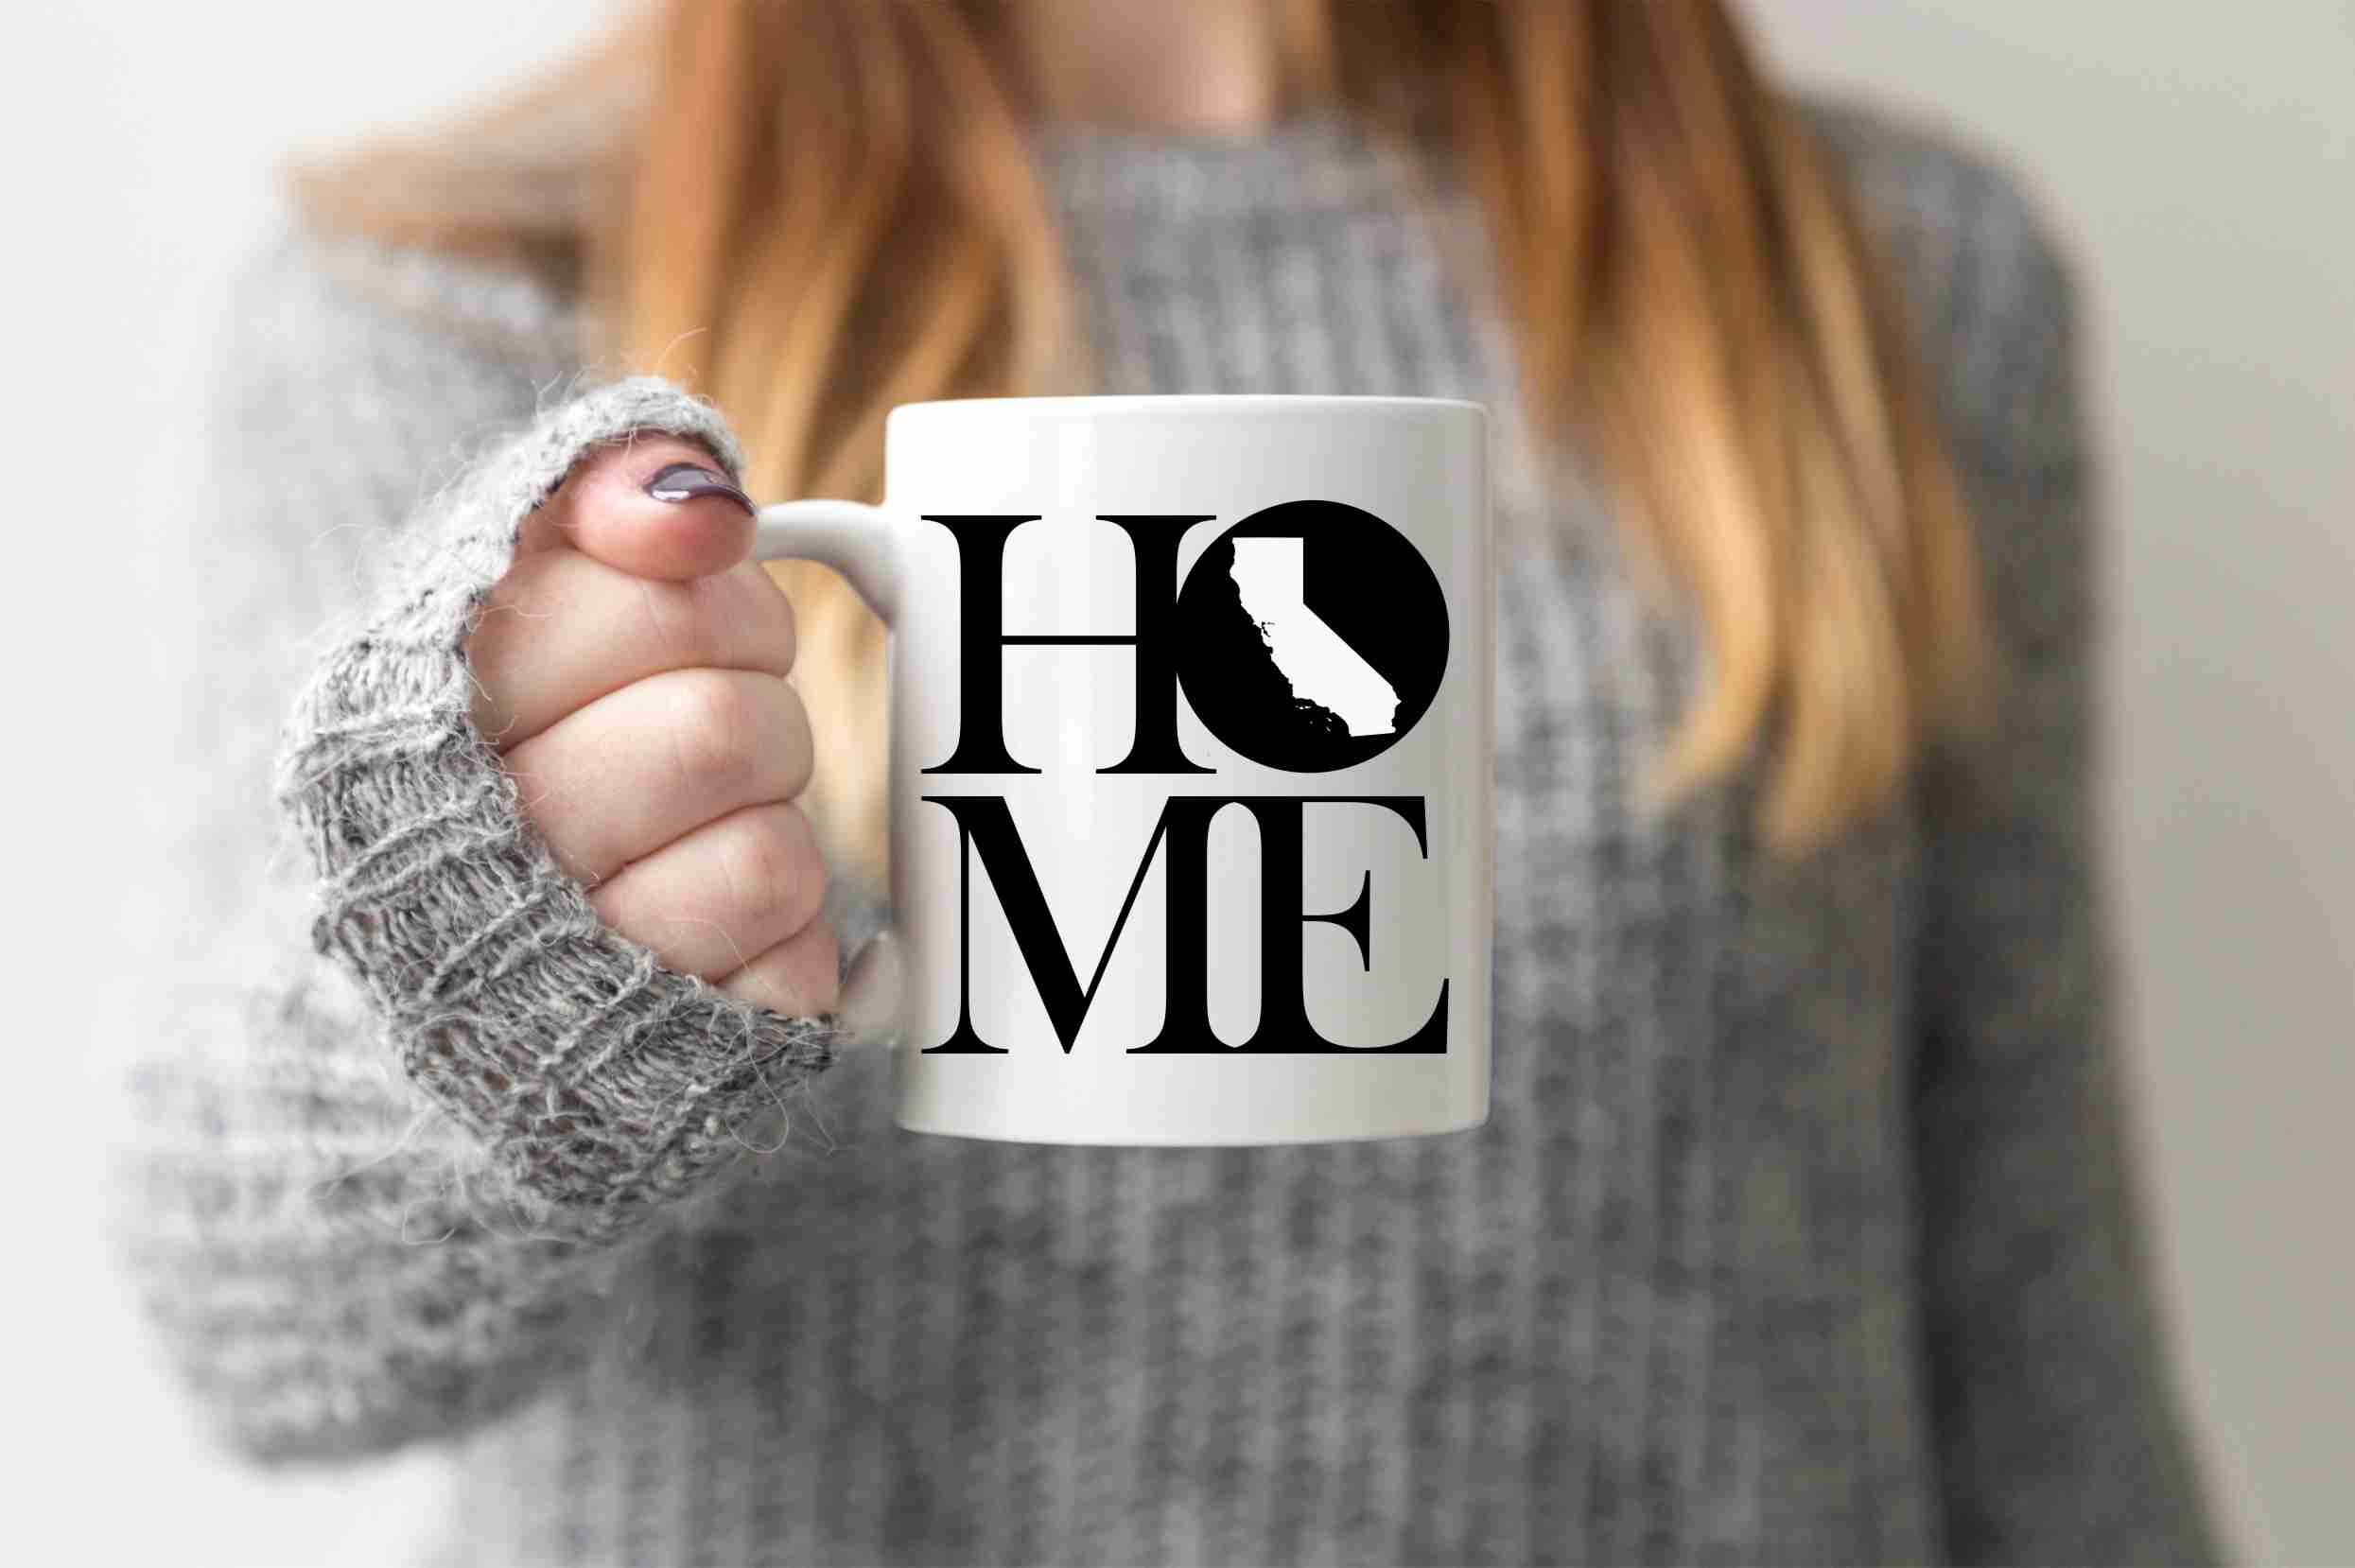 California Mug State Mug Coffee Mug Home Mug Homesick Gift Personalized Mug Custom Mug No Place Like Home Boyfriend Gift Valentines Day Gift